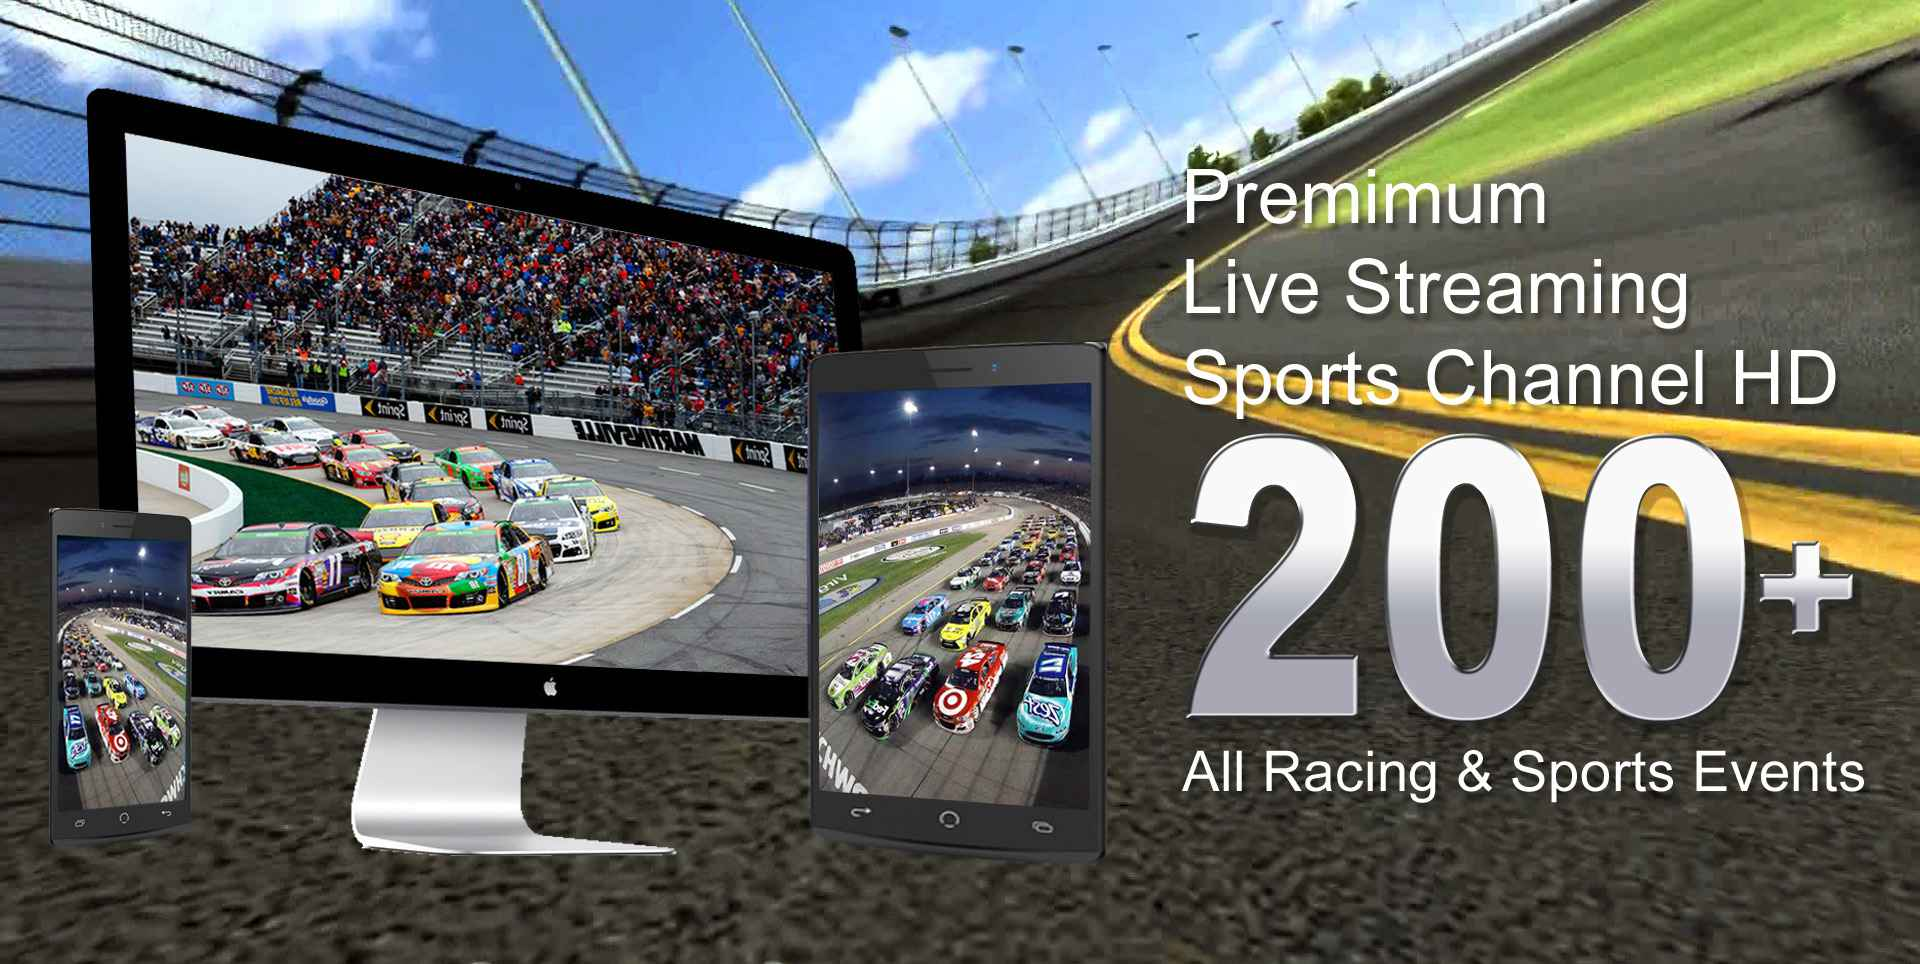 chicagoland-speedway-xfinity-series-race-2015-live